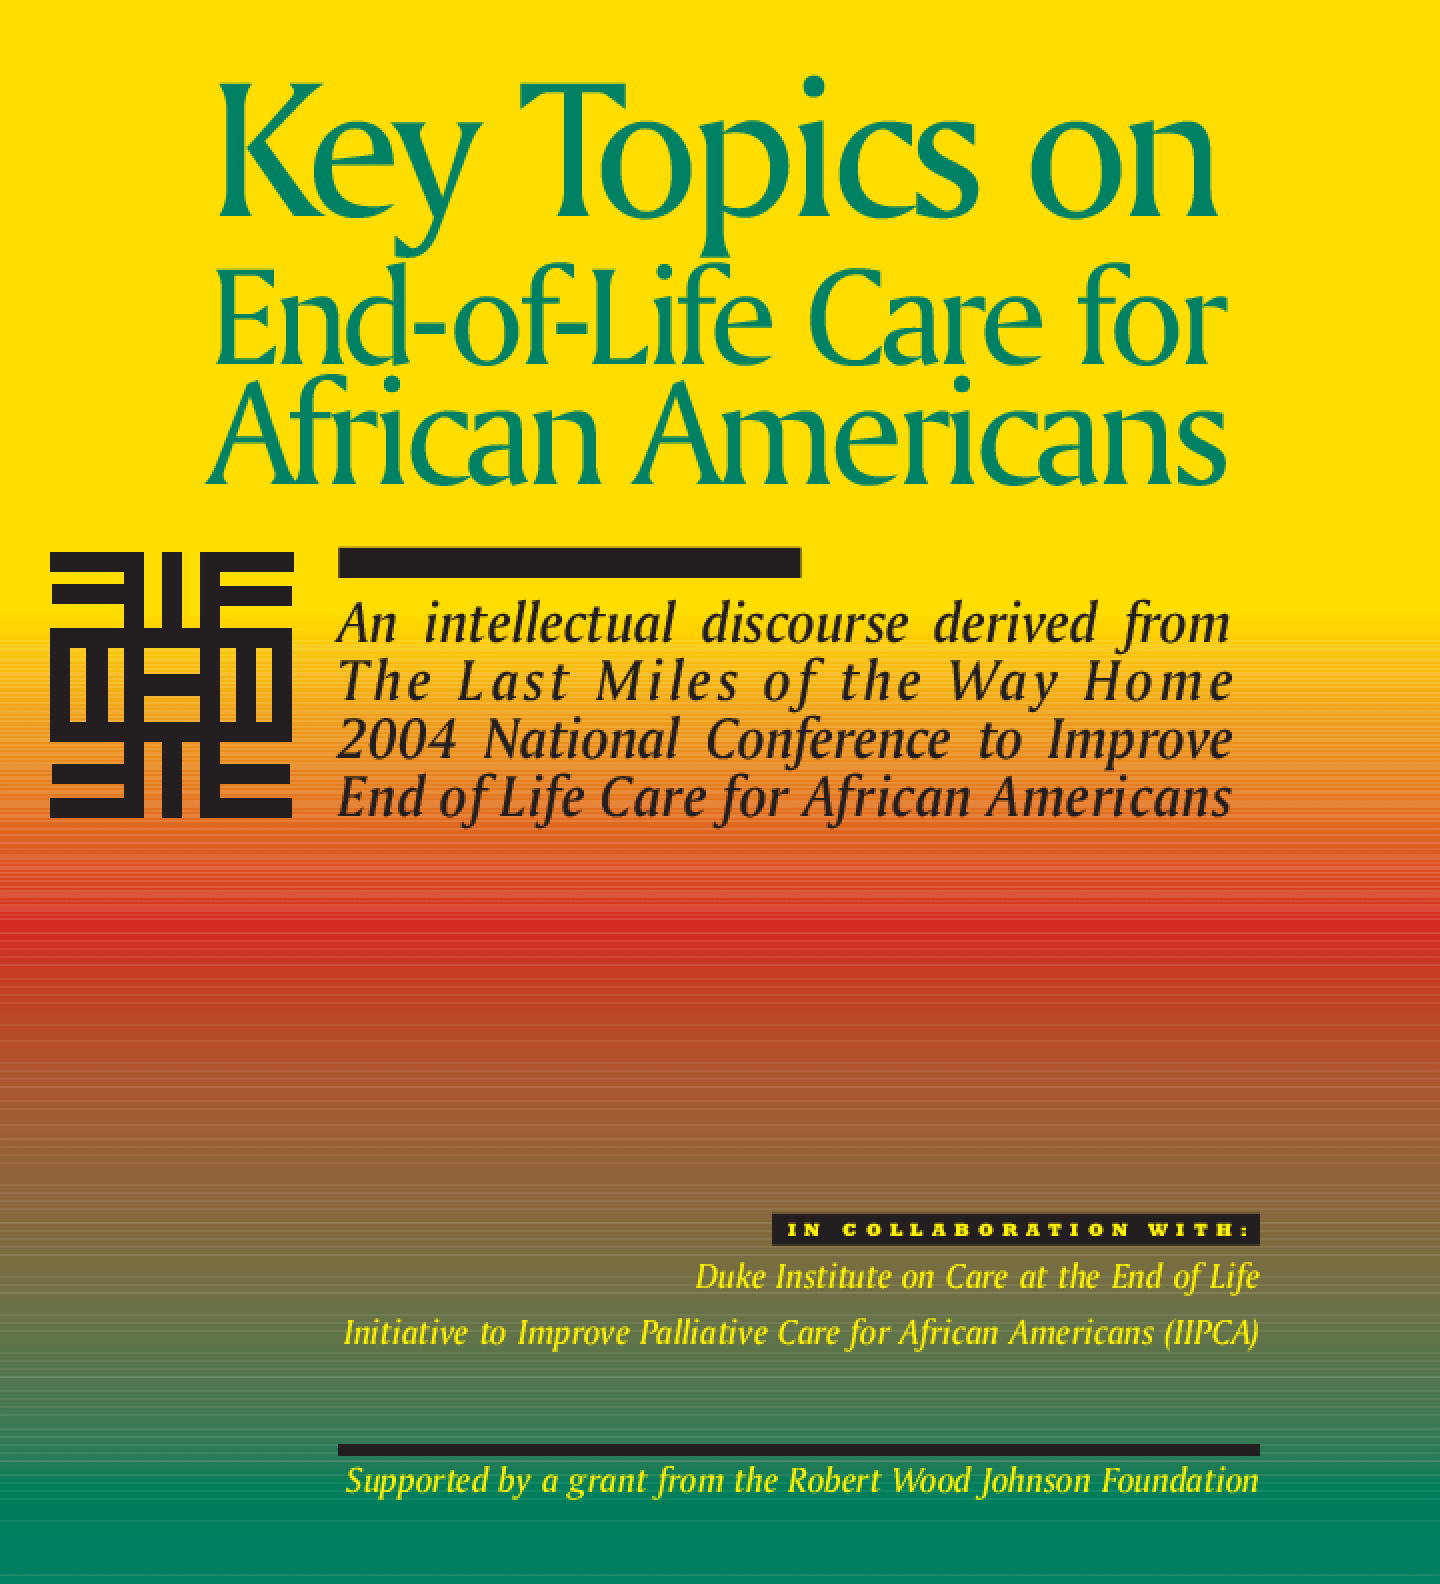 Key Topics on End-of-Life Care for African Americans